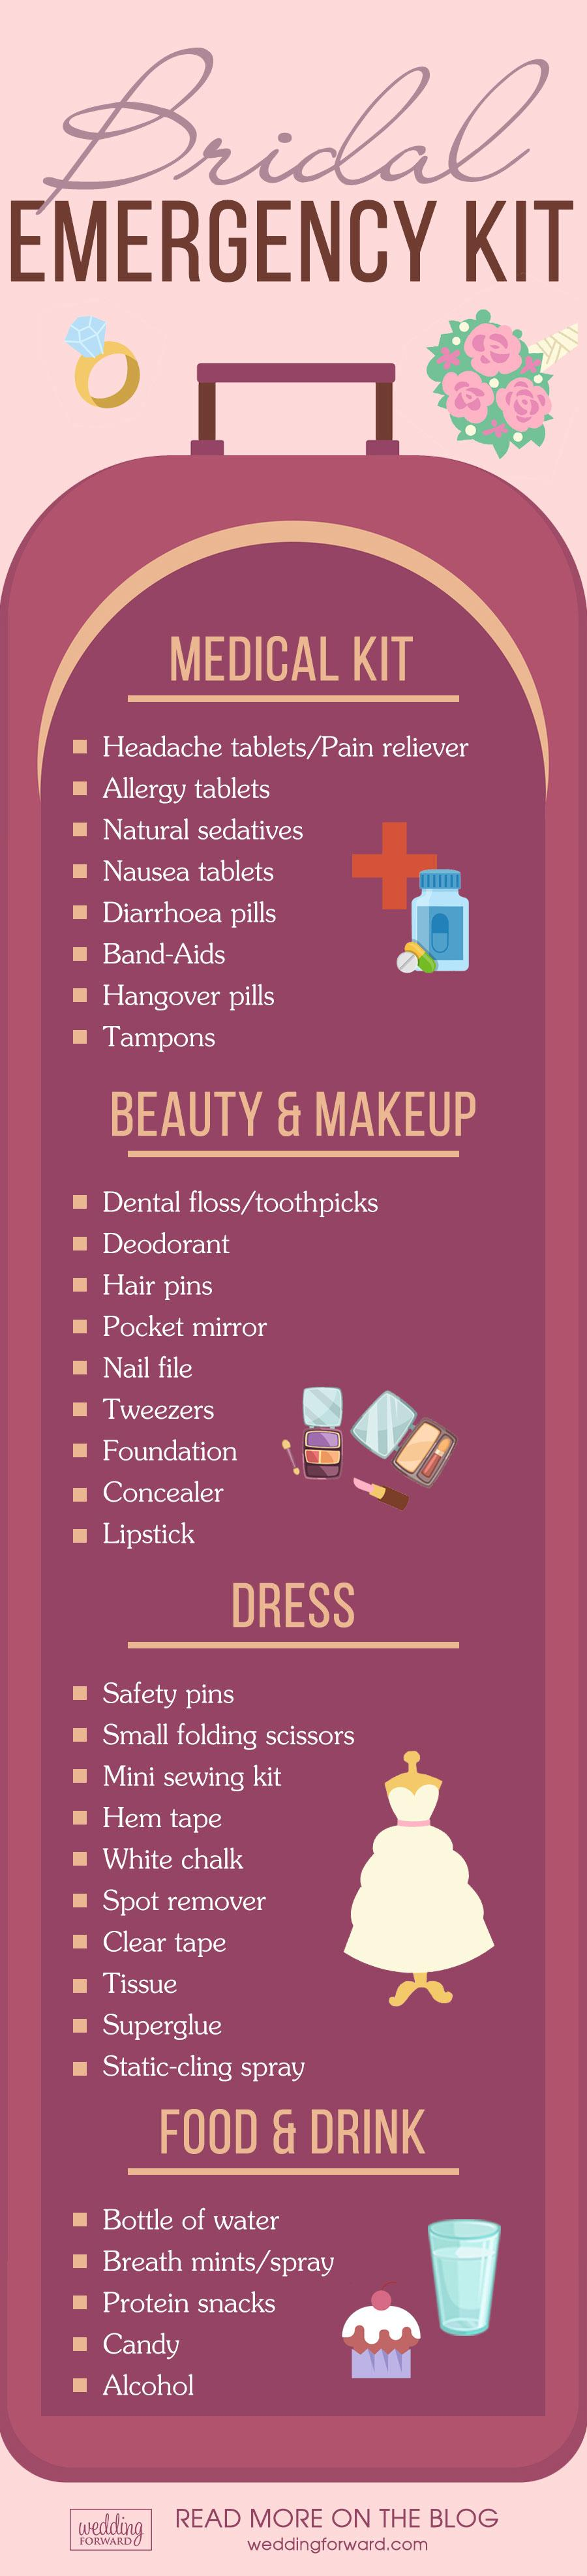 list bridal emergency kit with medical beauty and makeup dress food drink